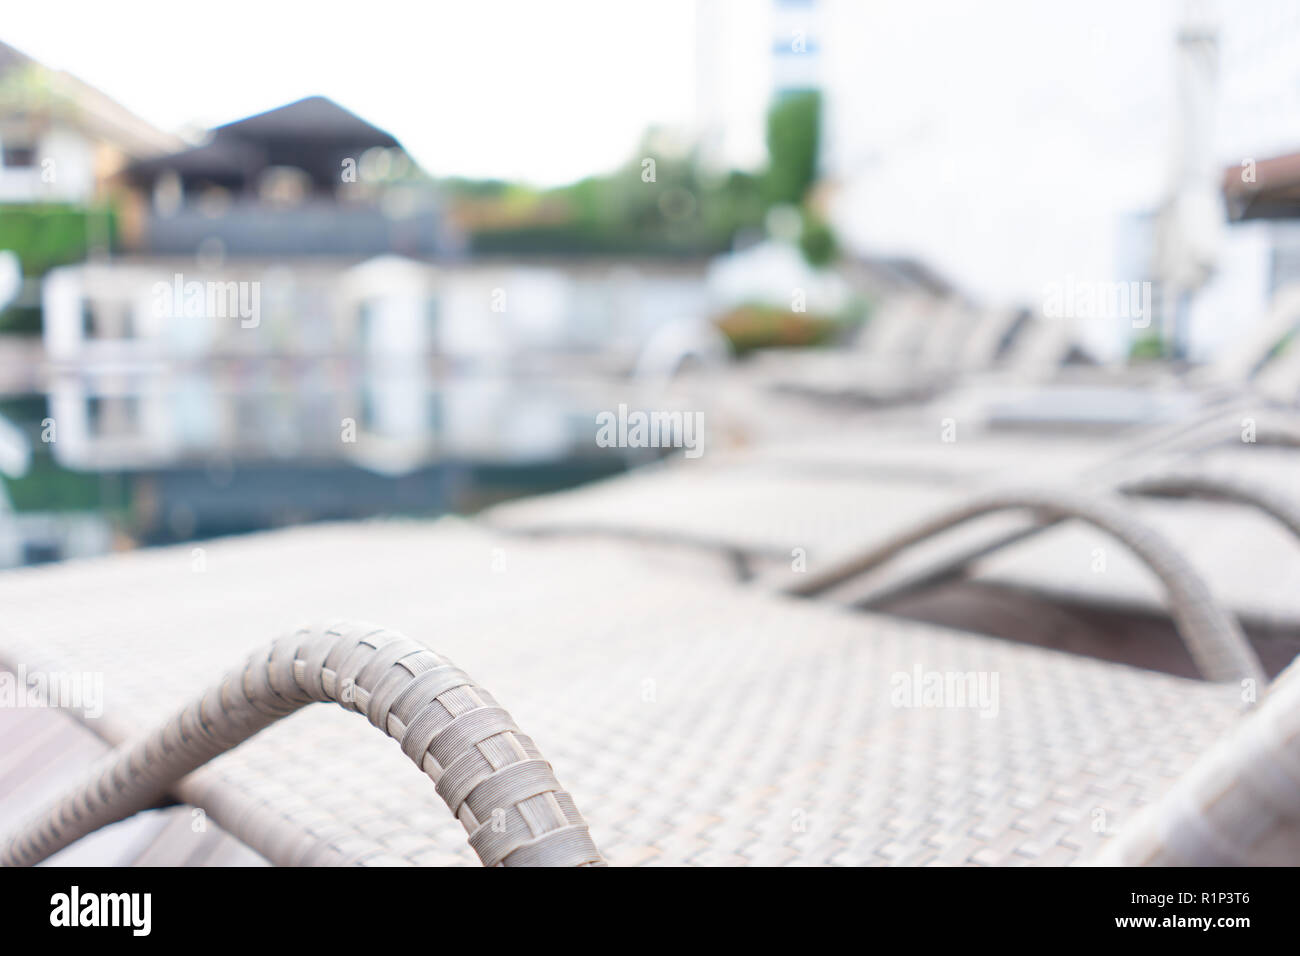 Swimming pool. Luxury hotel in Pattaya, Thailand. Summer beach vacation. Stock Photo